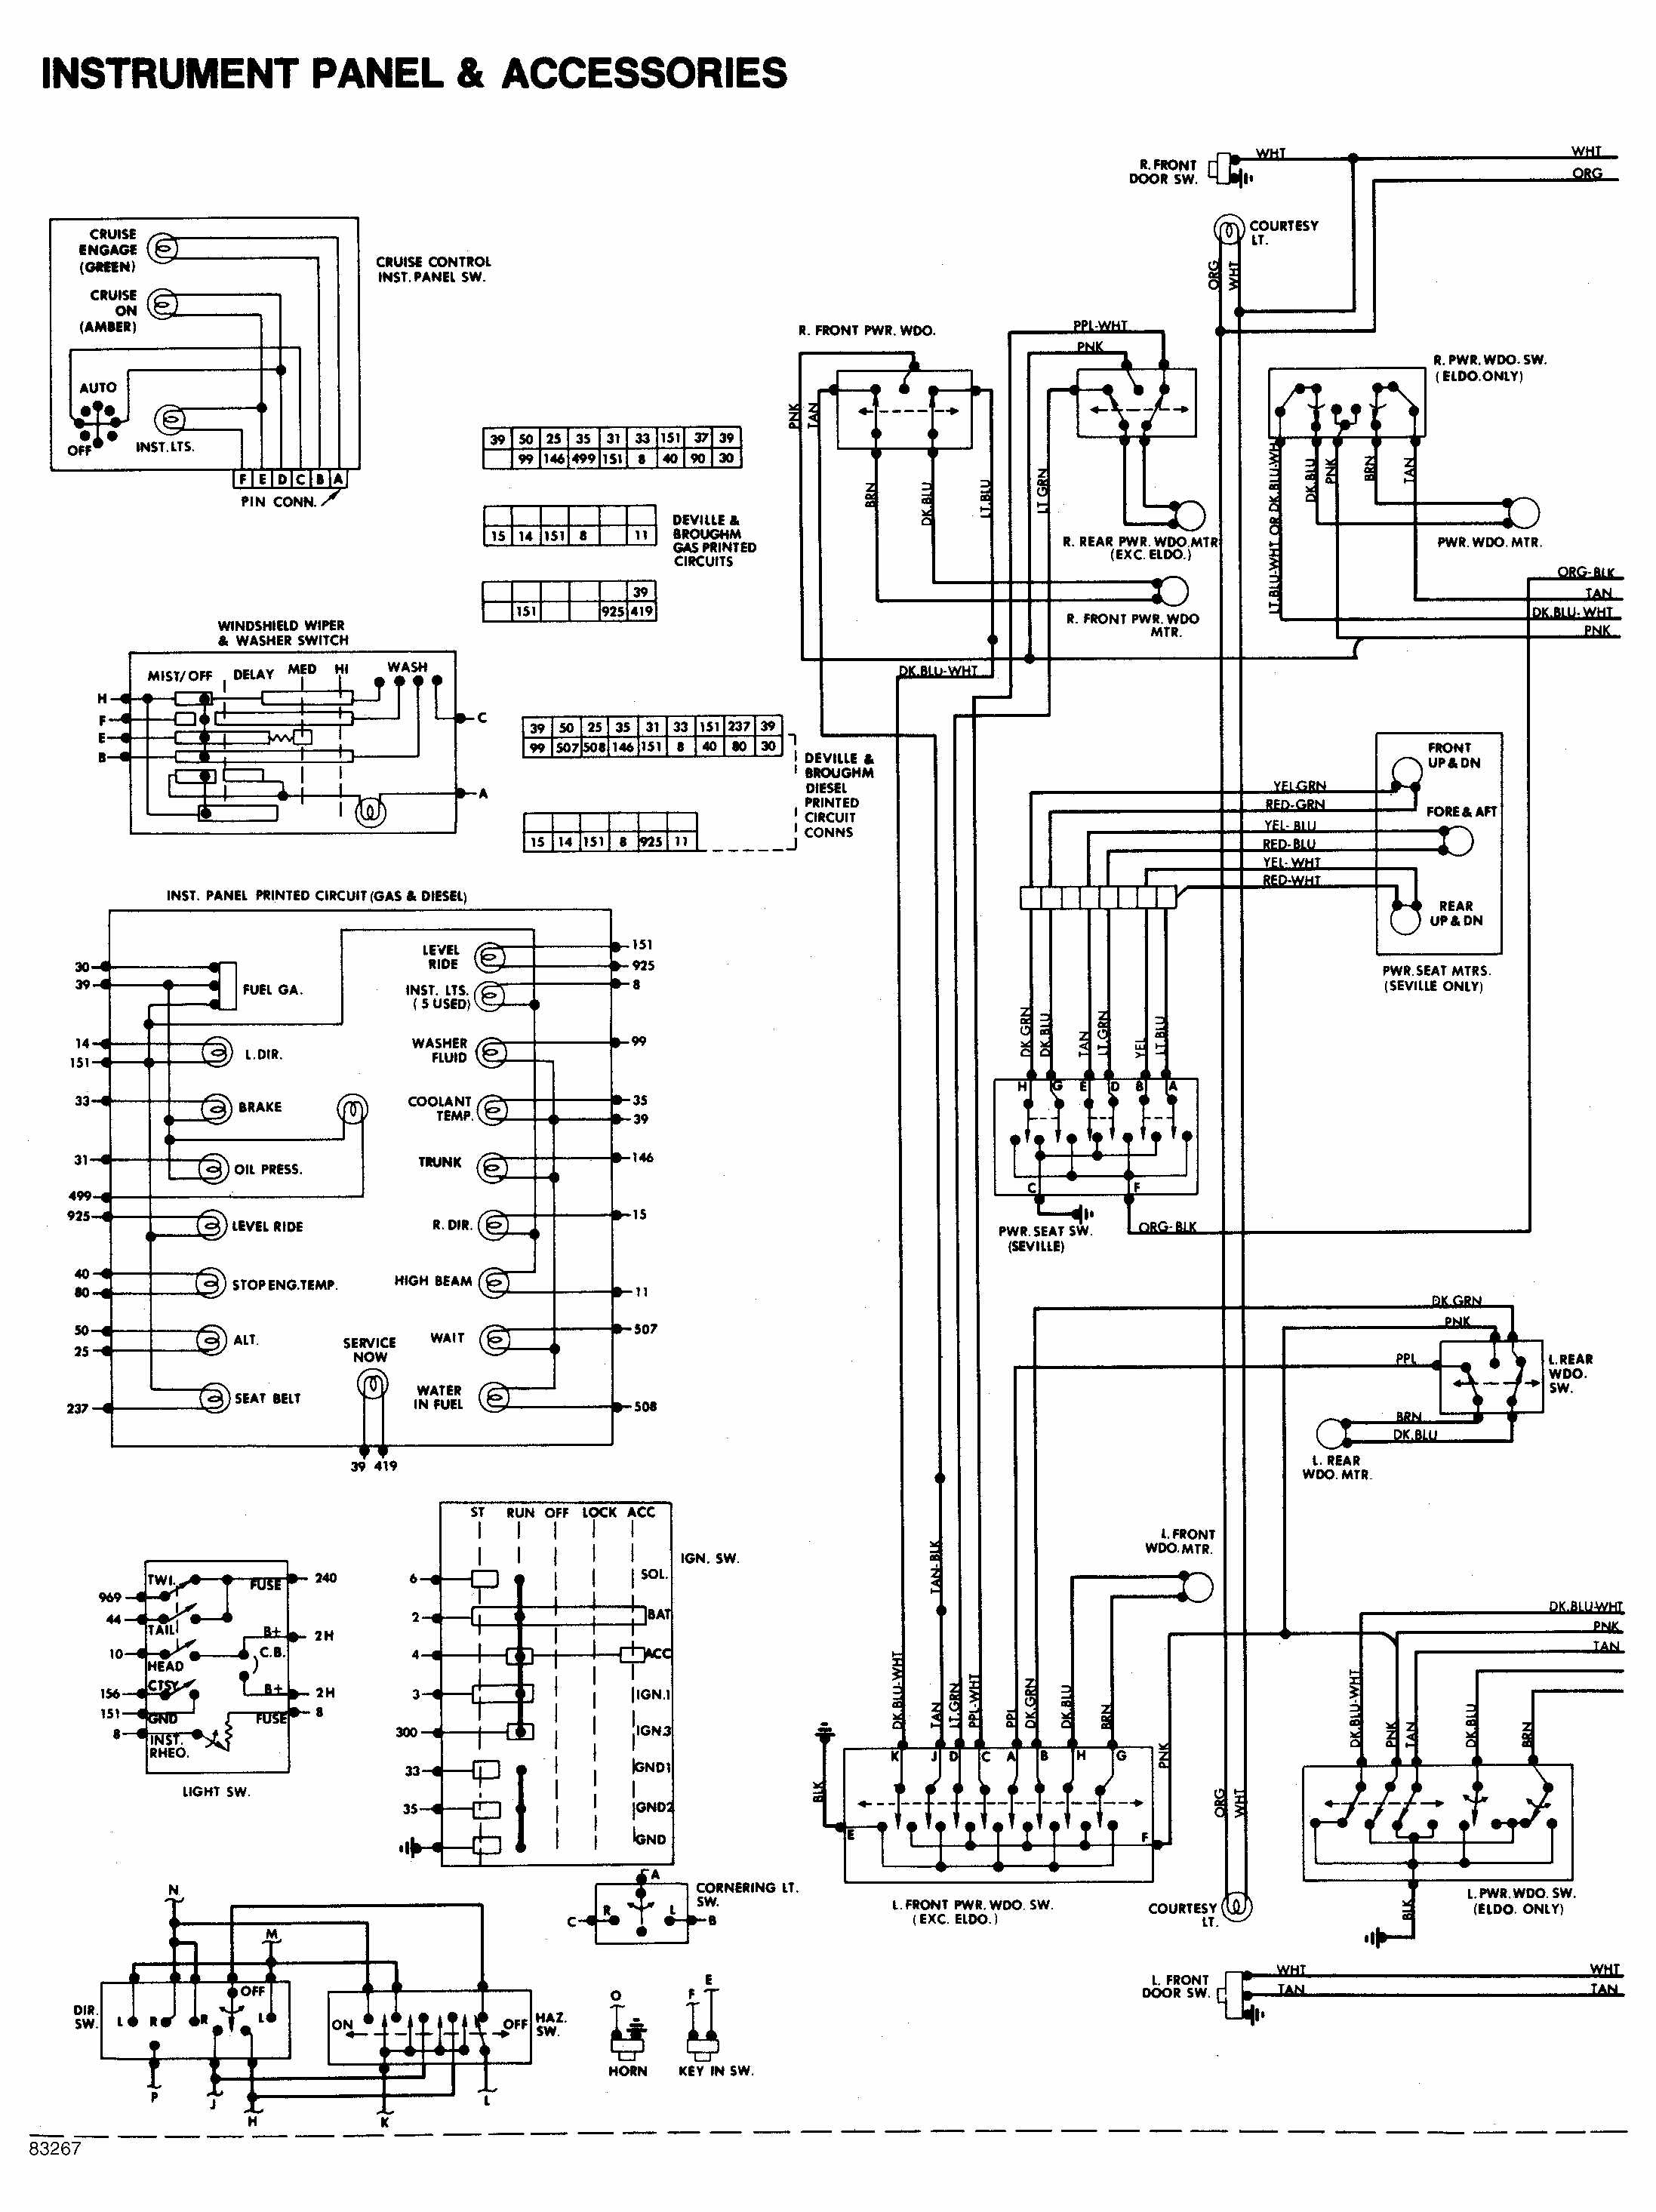 Instrument Panel And Accessories Wiring Diagram Of Cadillac Deville on 1965 chevy truck ignition diagram